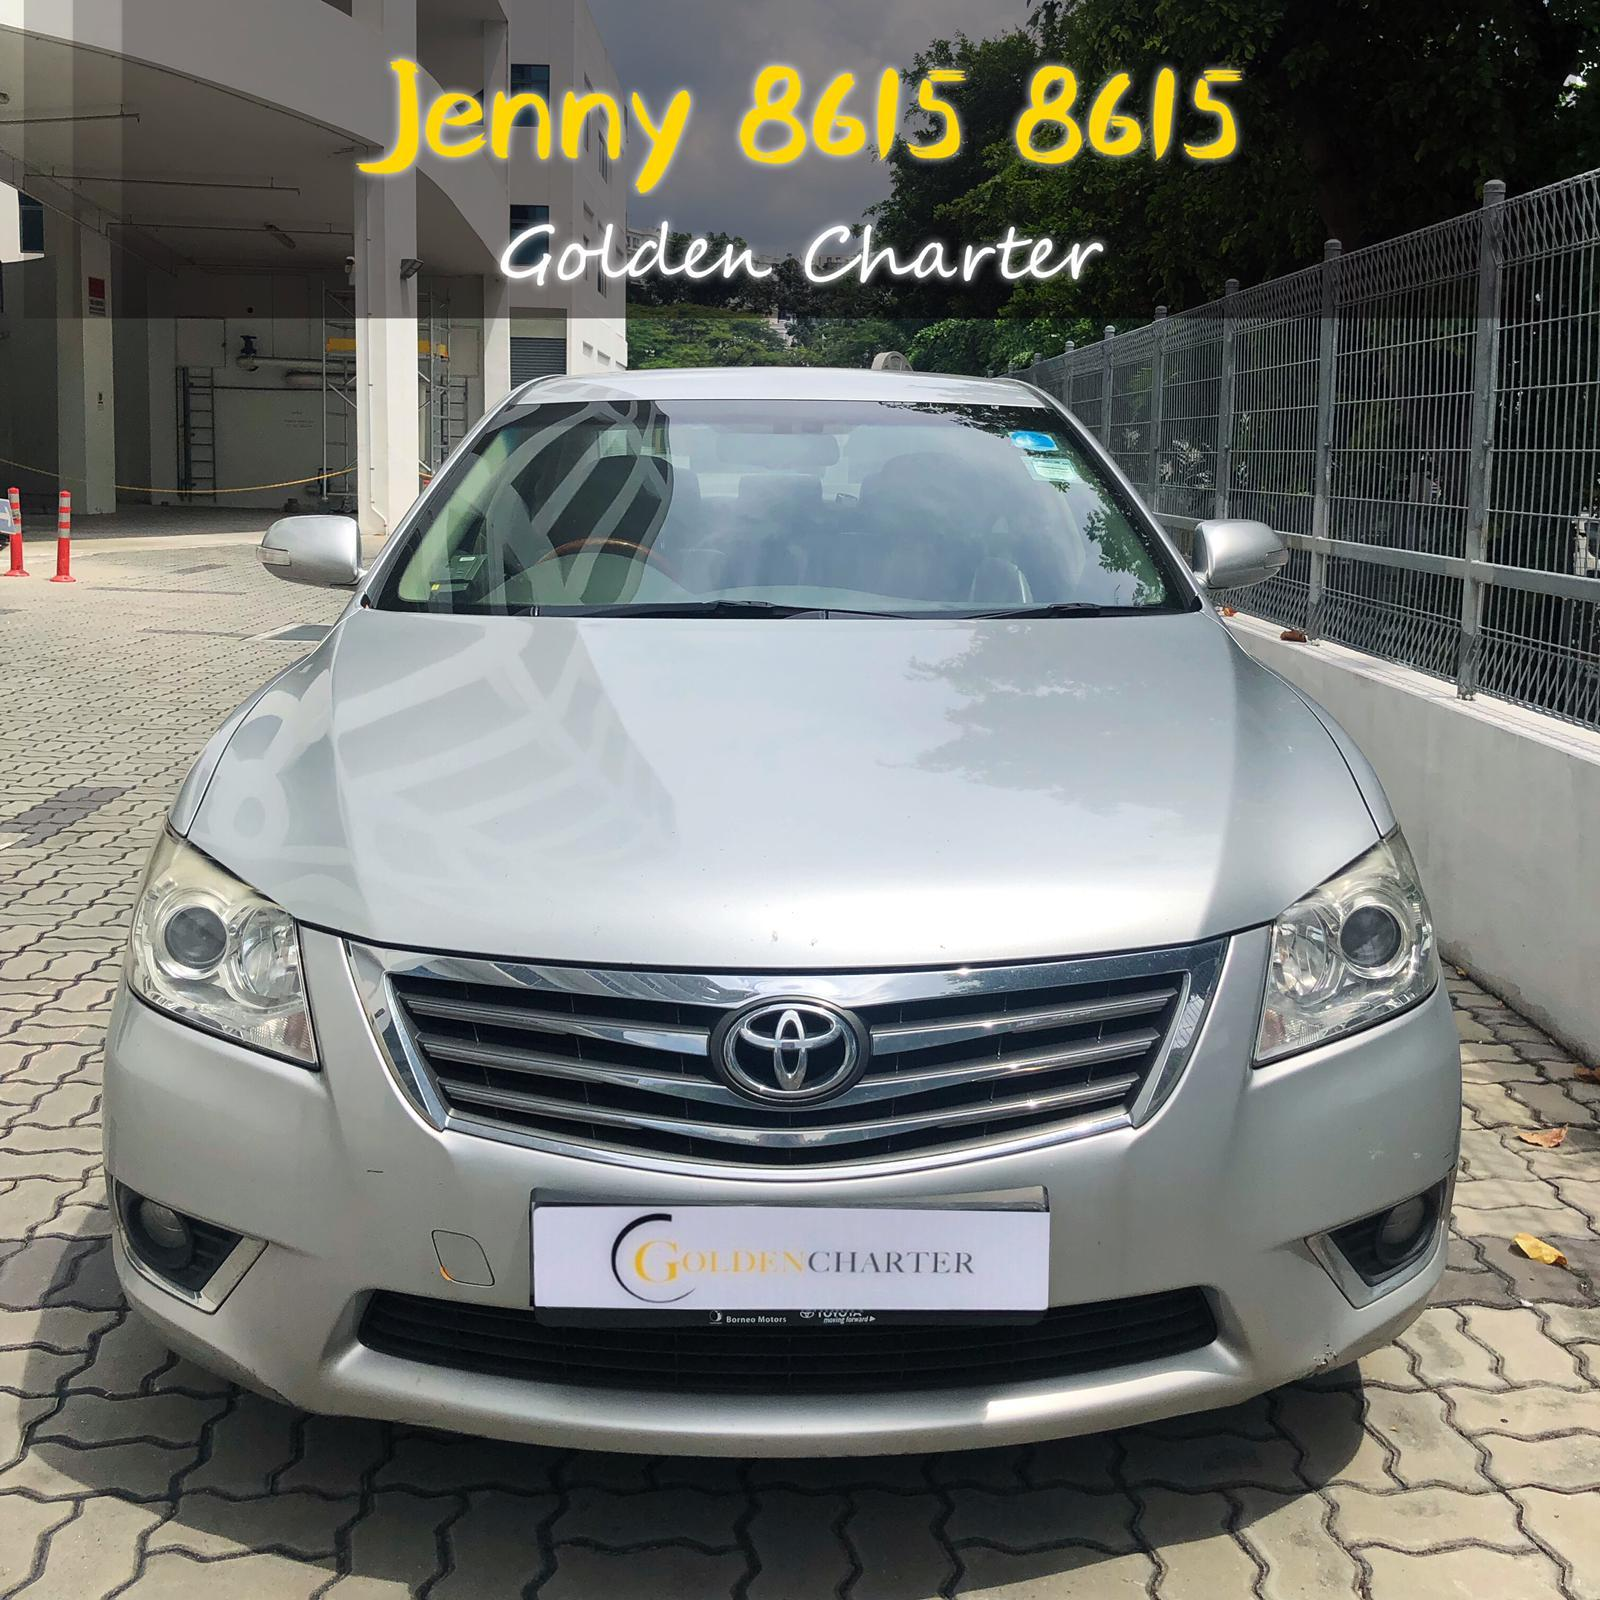 Toyota Camry 2.0a Mazda Toyota Vios Wish Altis Car Axio Premio Allion Honda Jazz Fit Stream Civic Cars Hyundai Avante $50 perday PHV  For Rent Grab Rental Gojek Or Personal Use Low price and Cheap